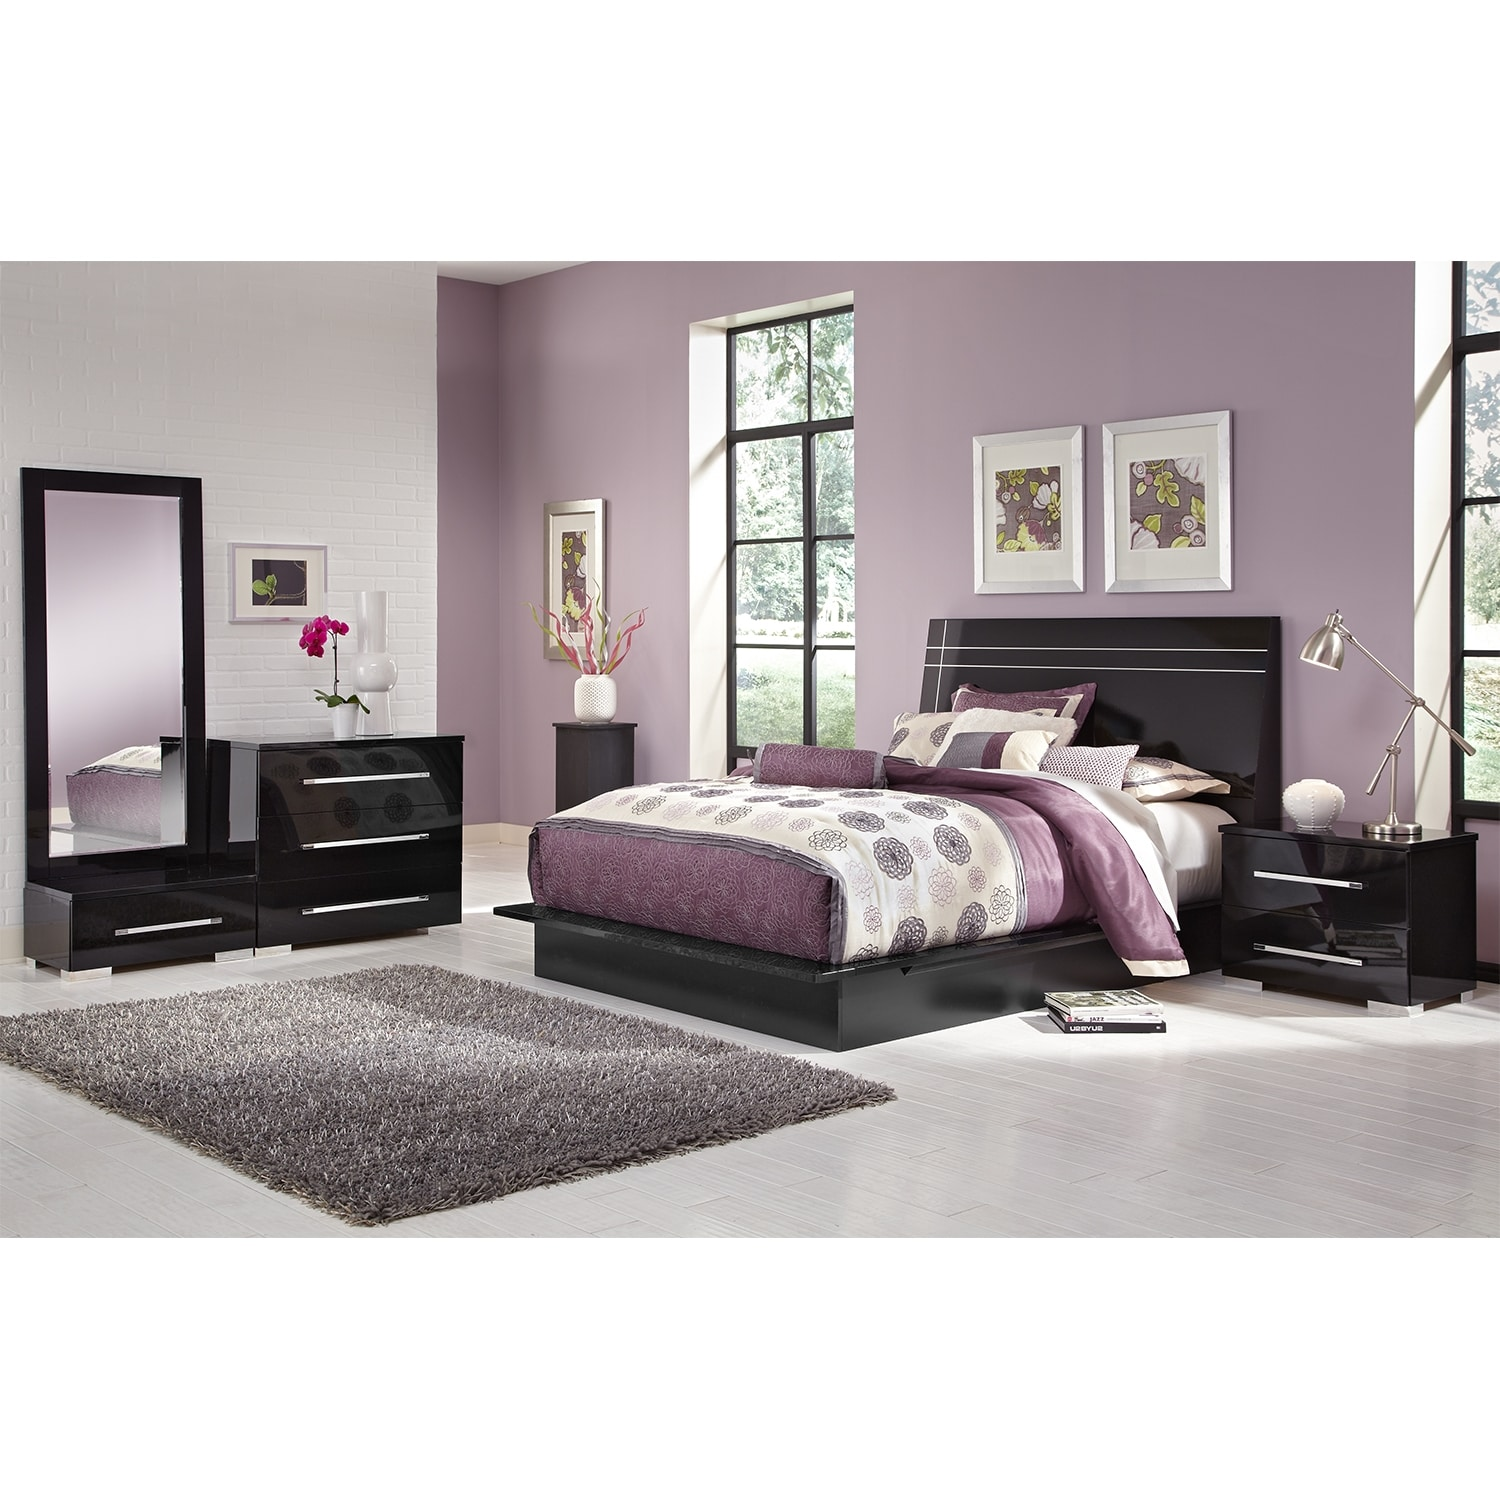 Dimora 6-Piece King Panel Bedroom Set - Black